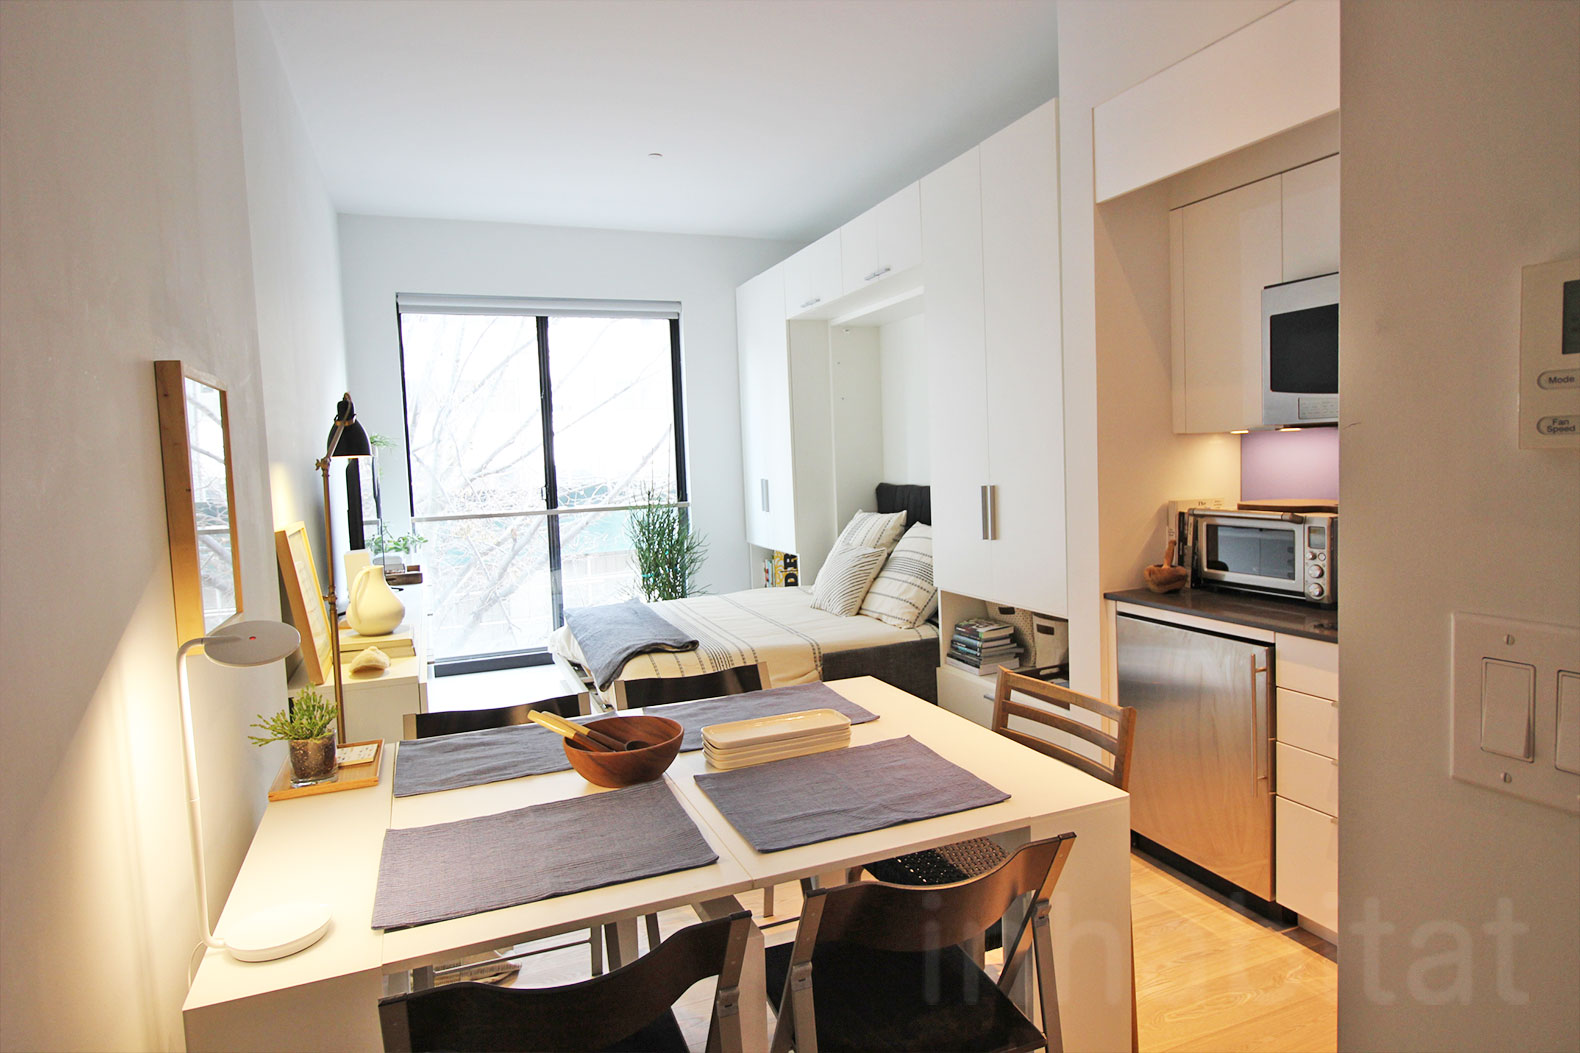 NYCs First Micro Apartment Units Near Completion At